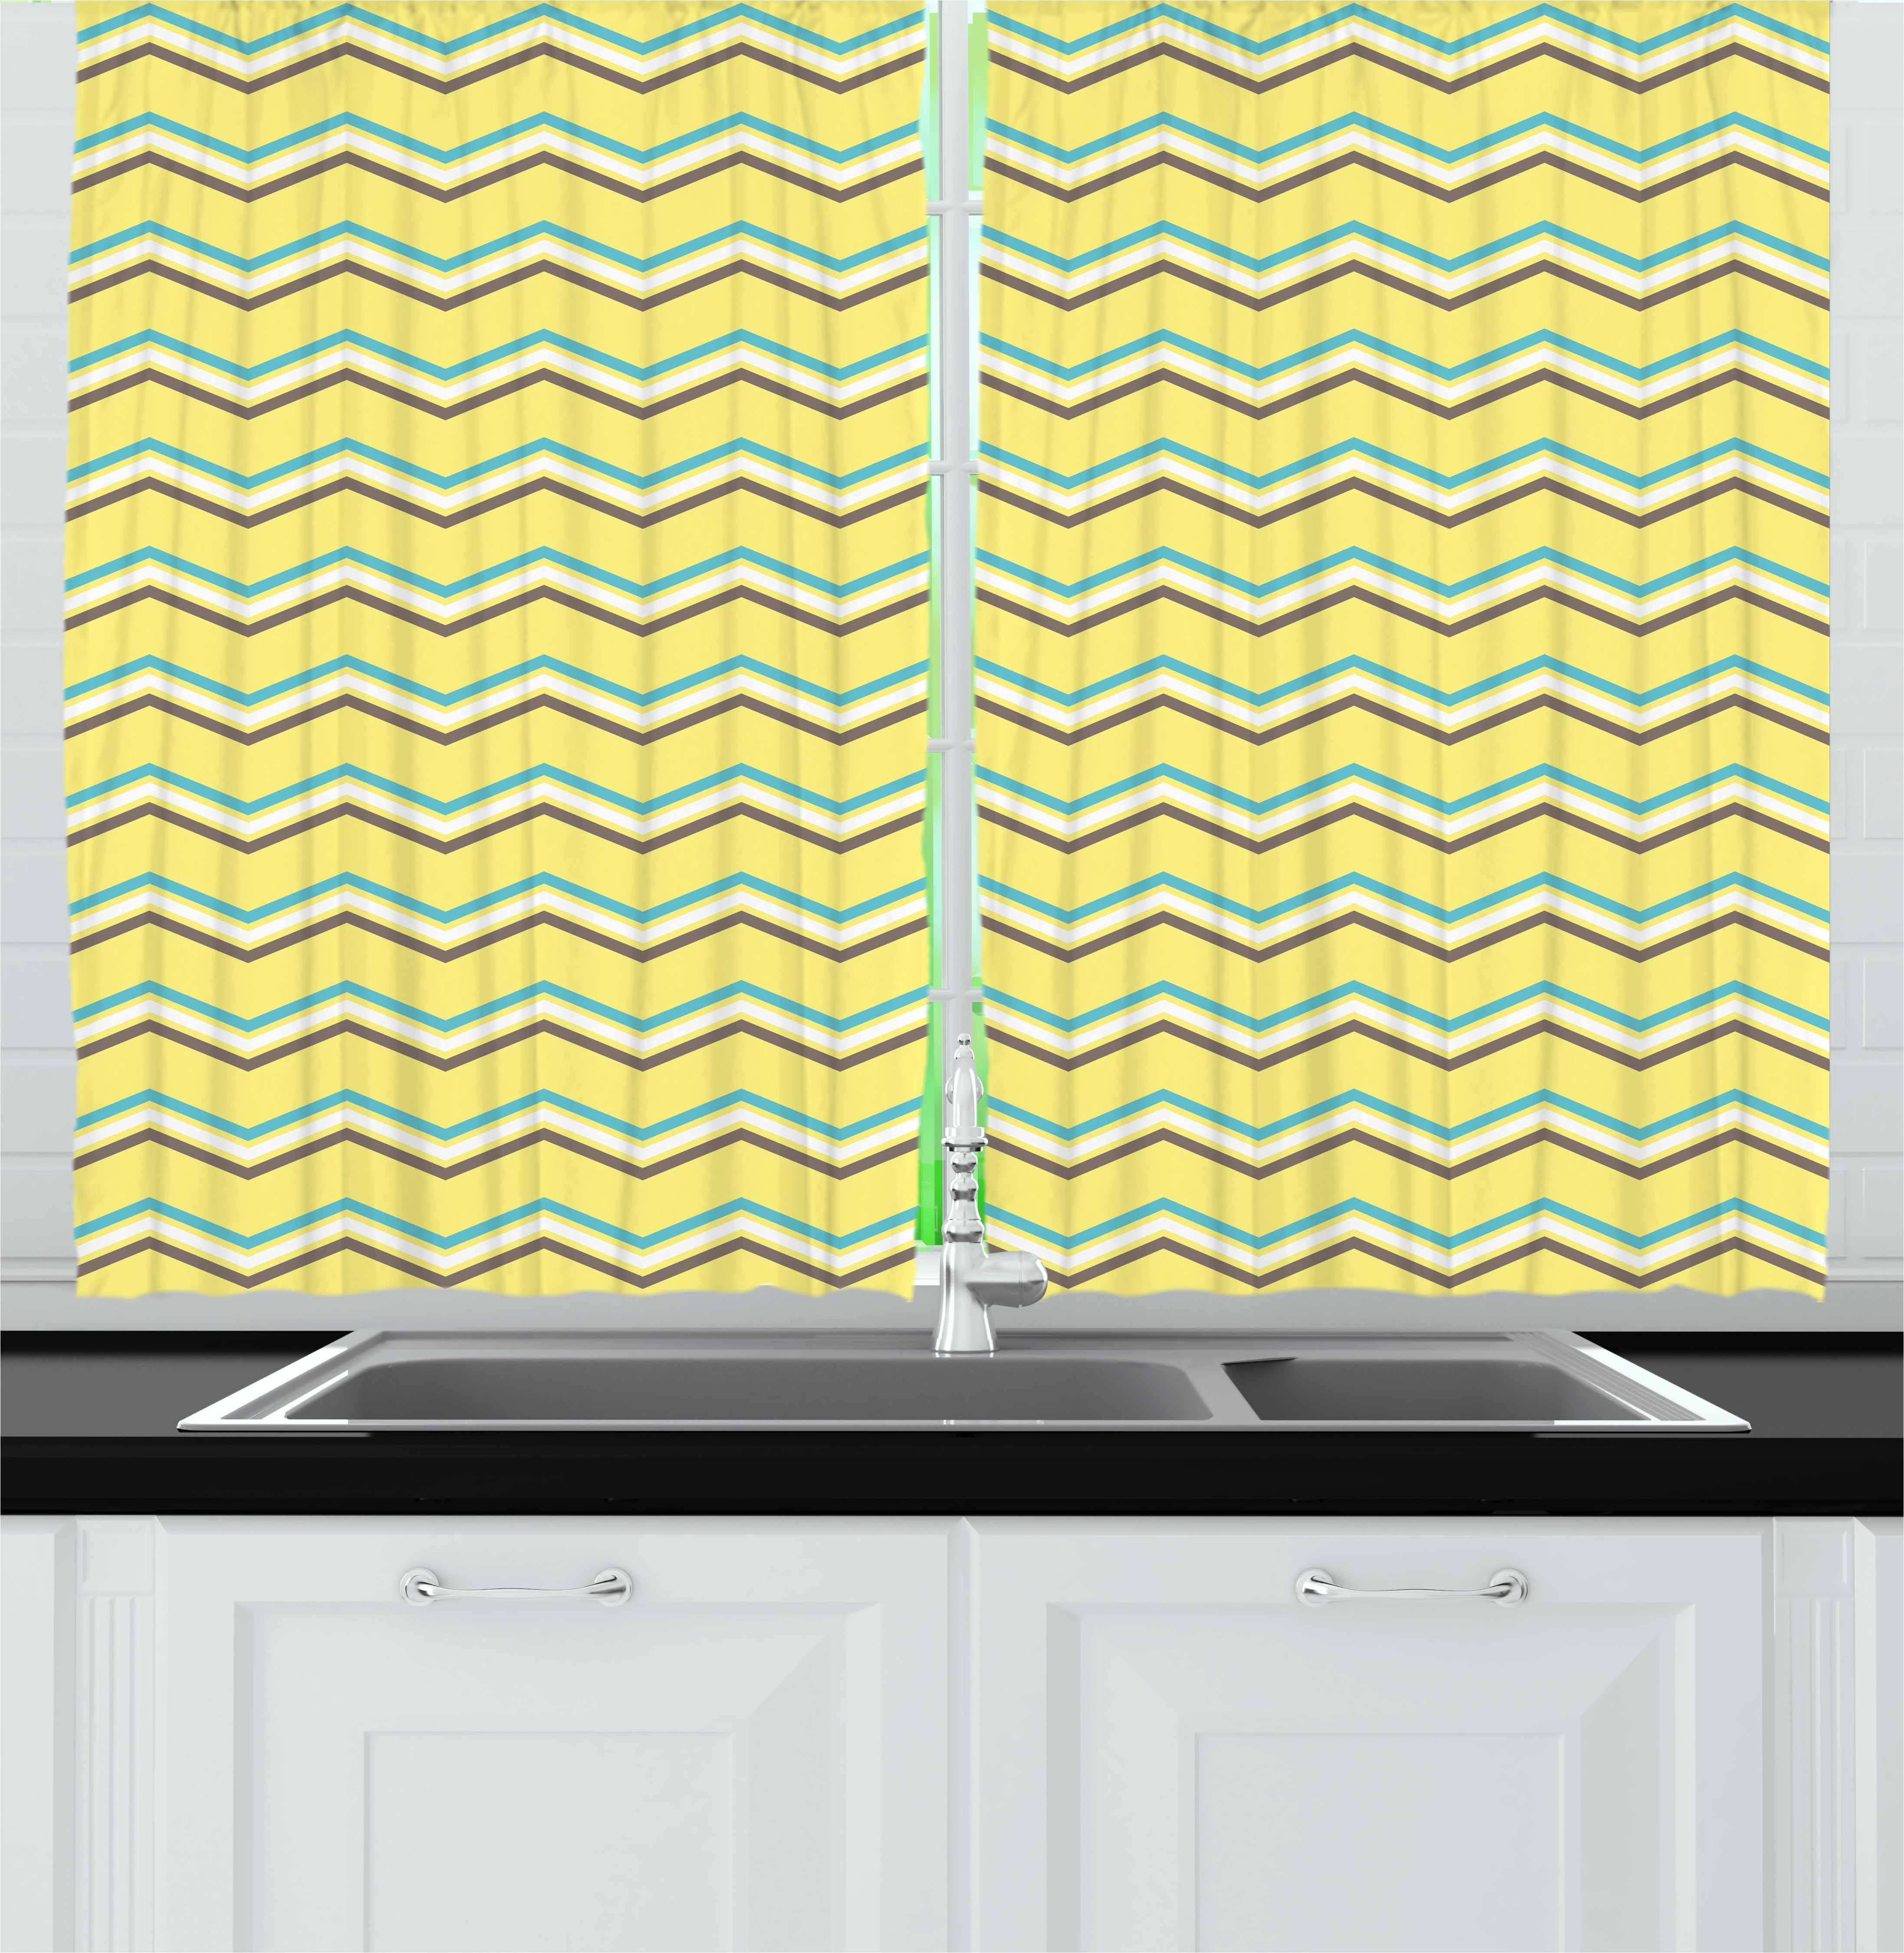 Yellow Chevron Curtains 2 Panels Set, Zigzag Lines in Horizontal Direction Retro Style Display, Window Drapes for Living Room Bedroom, 55W X 39L Inches, Yellow Sky Blue Charcoal Grey, by Ambesonne